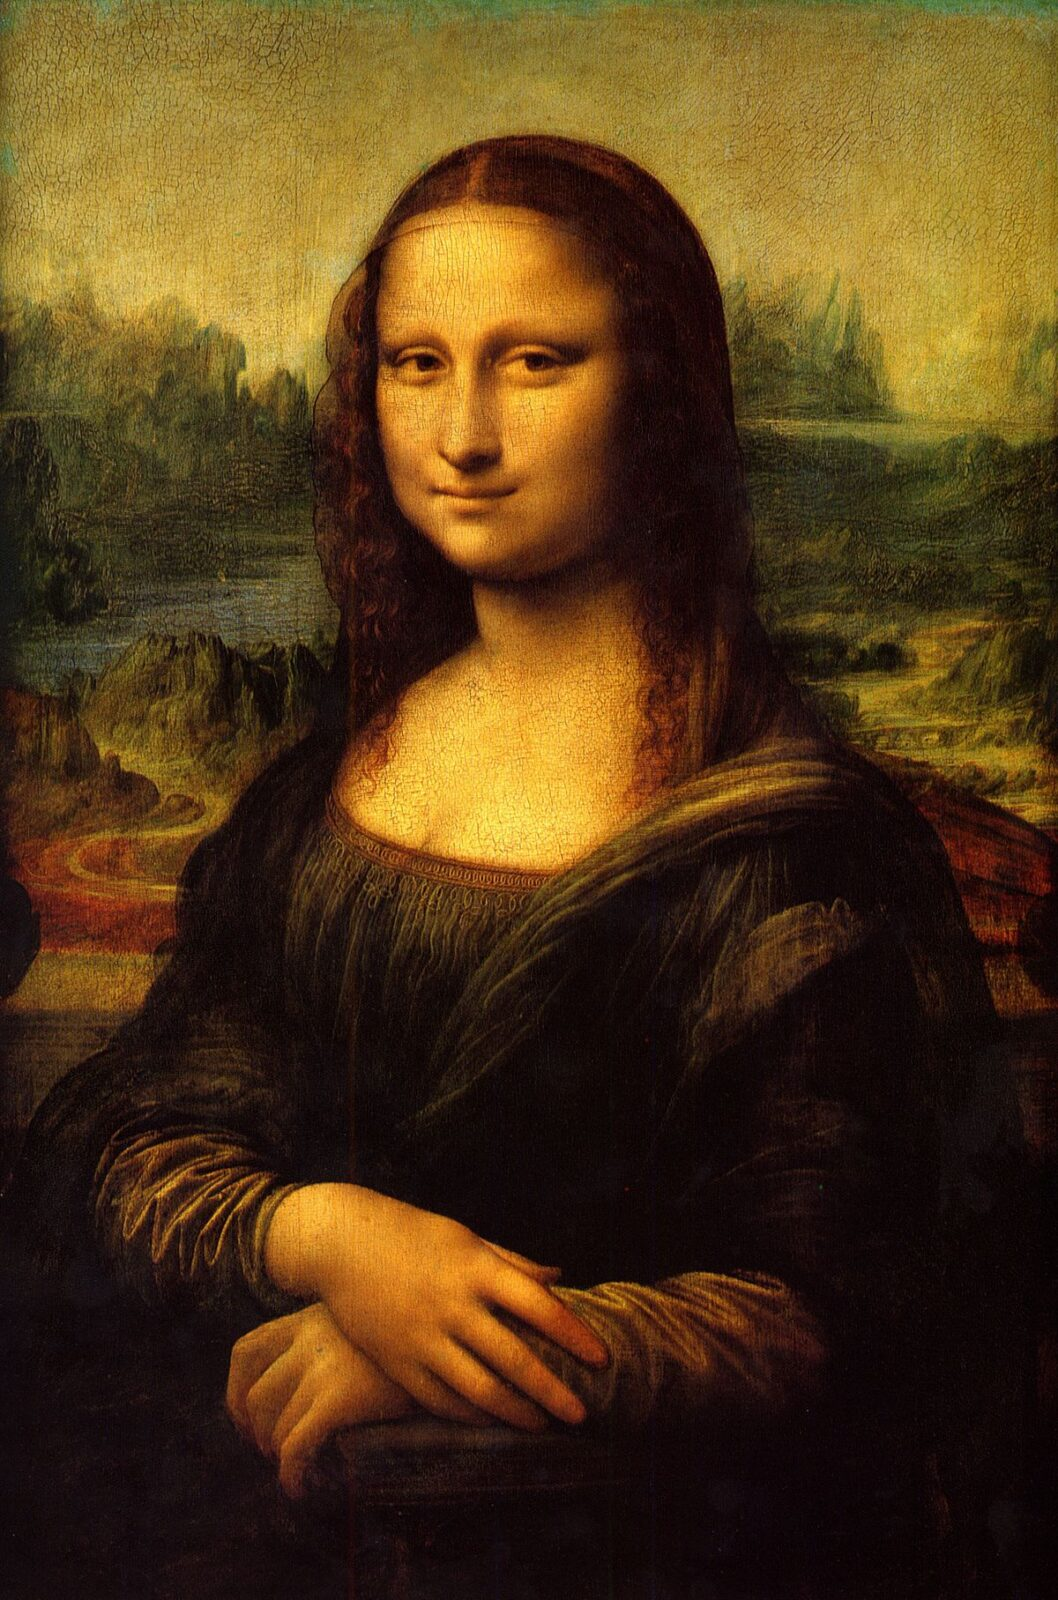 Today, the Louvre is dusting off its treasures - Louvre Puts Collection Online